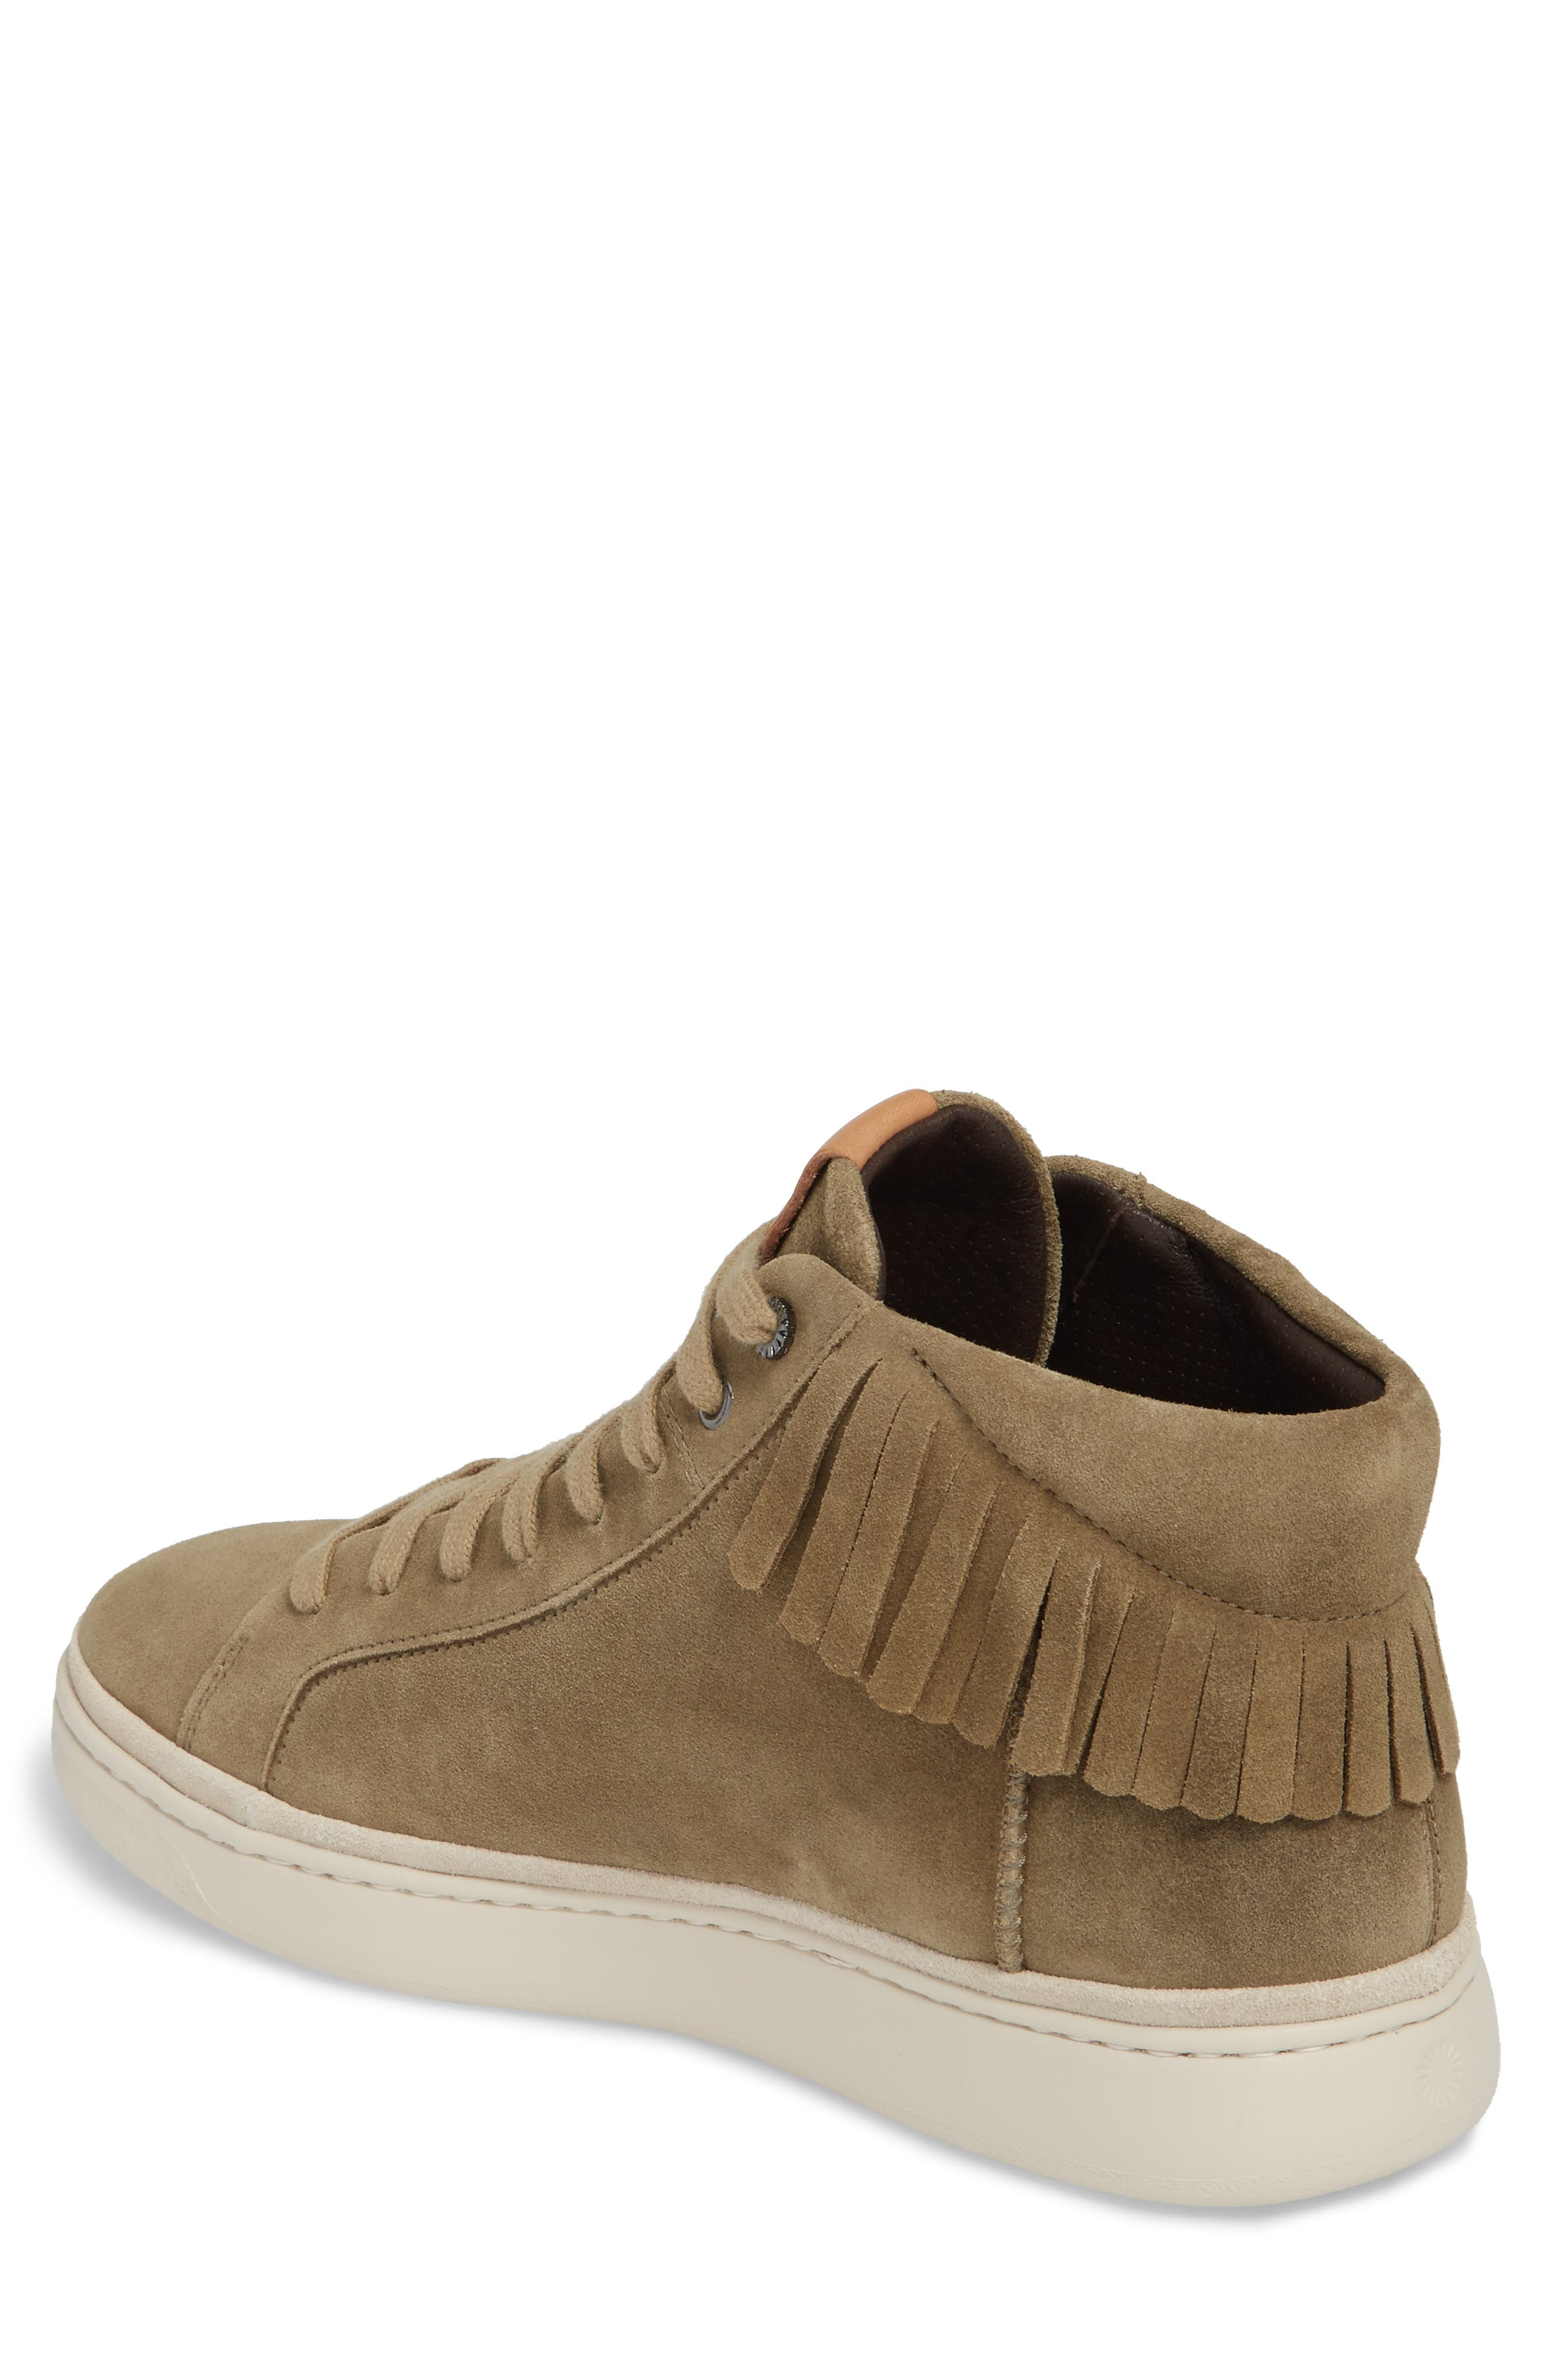 Alternate Image 2  - UGG® Brecken Fringe High-Top Sneaker (Men)